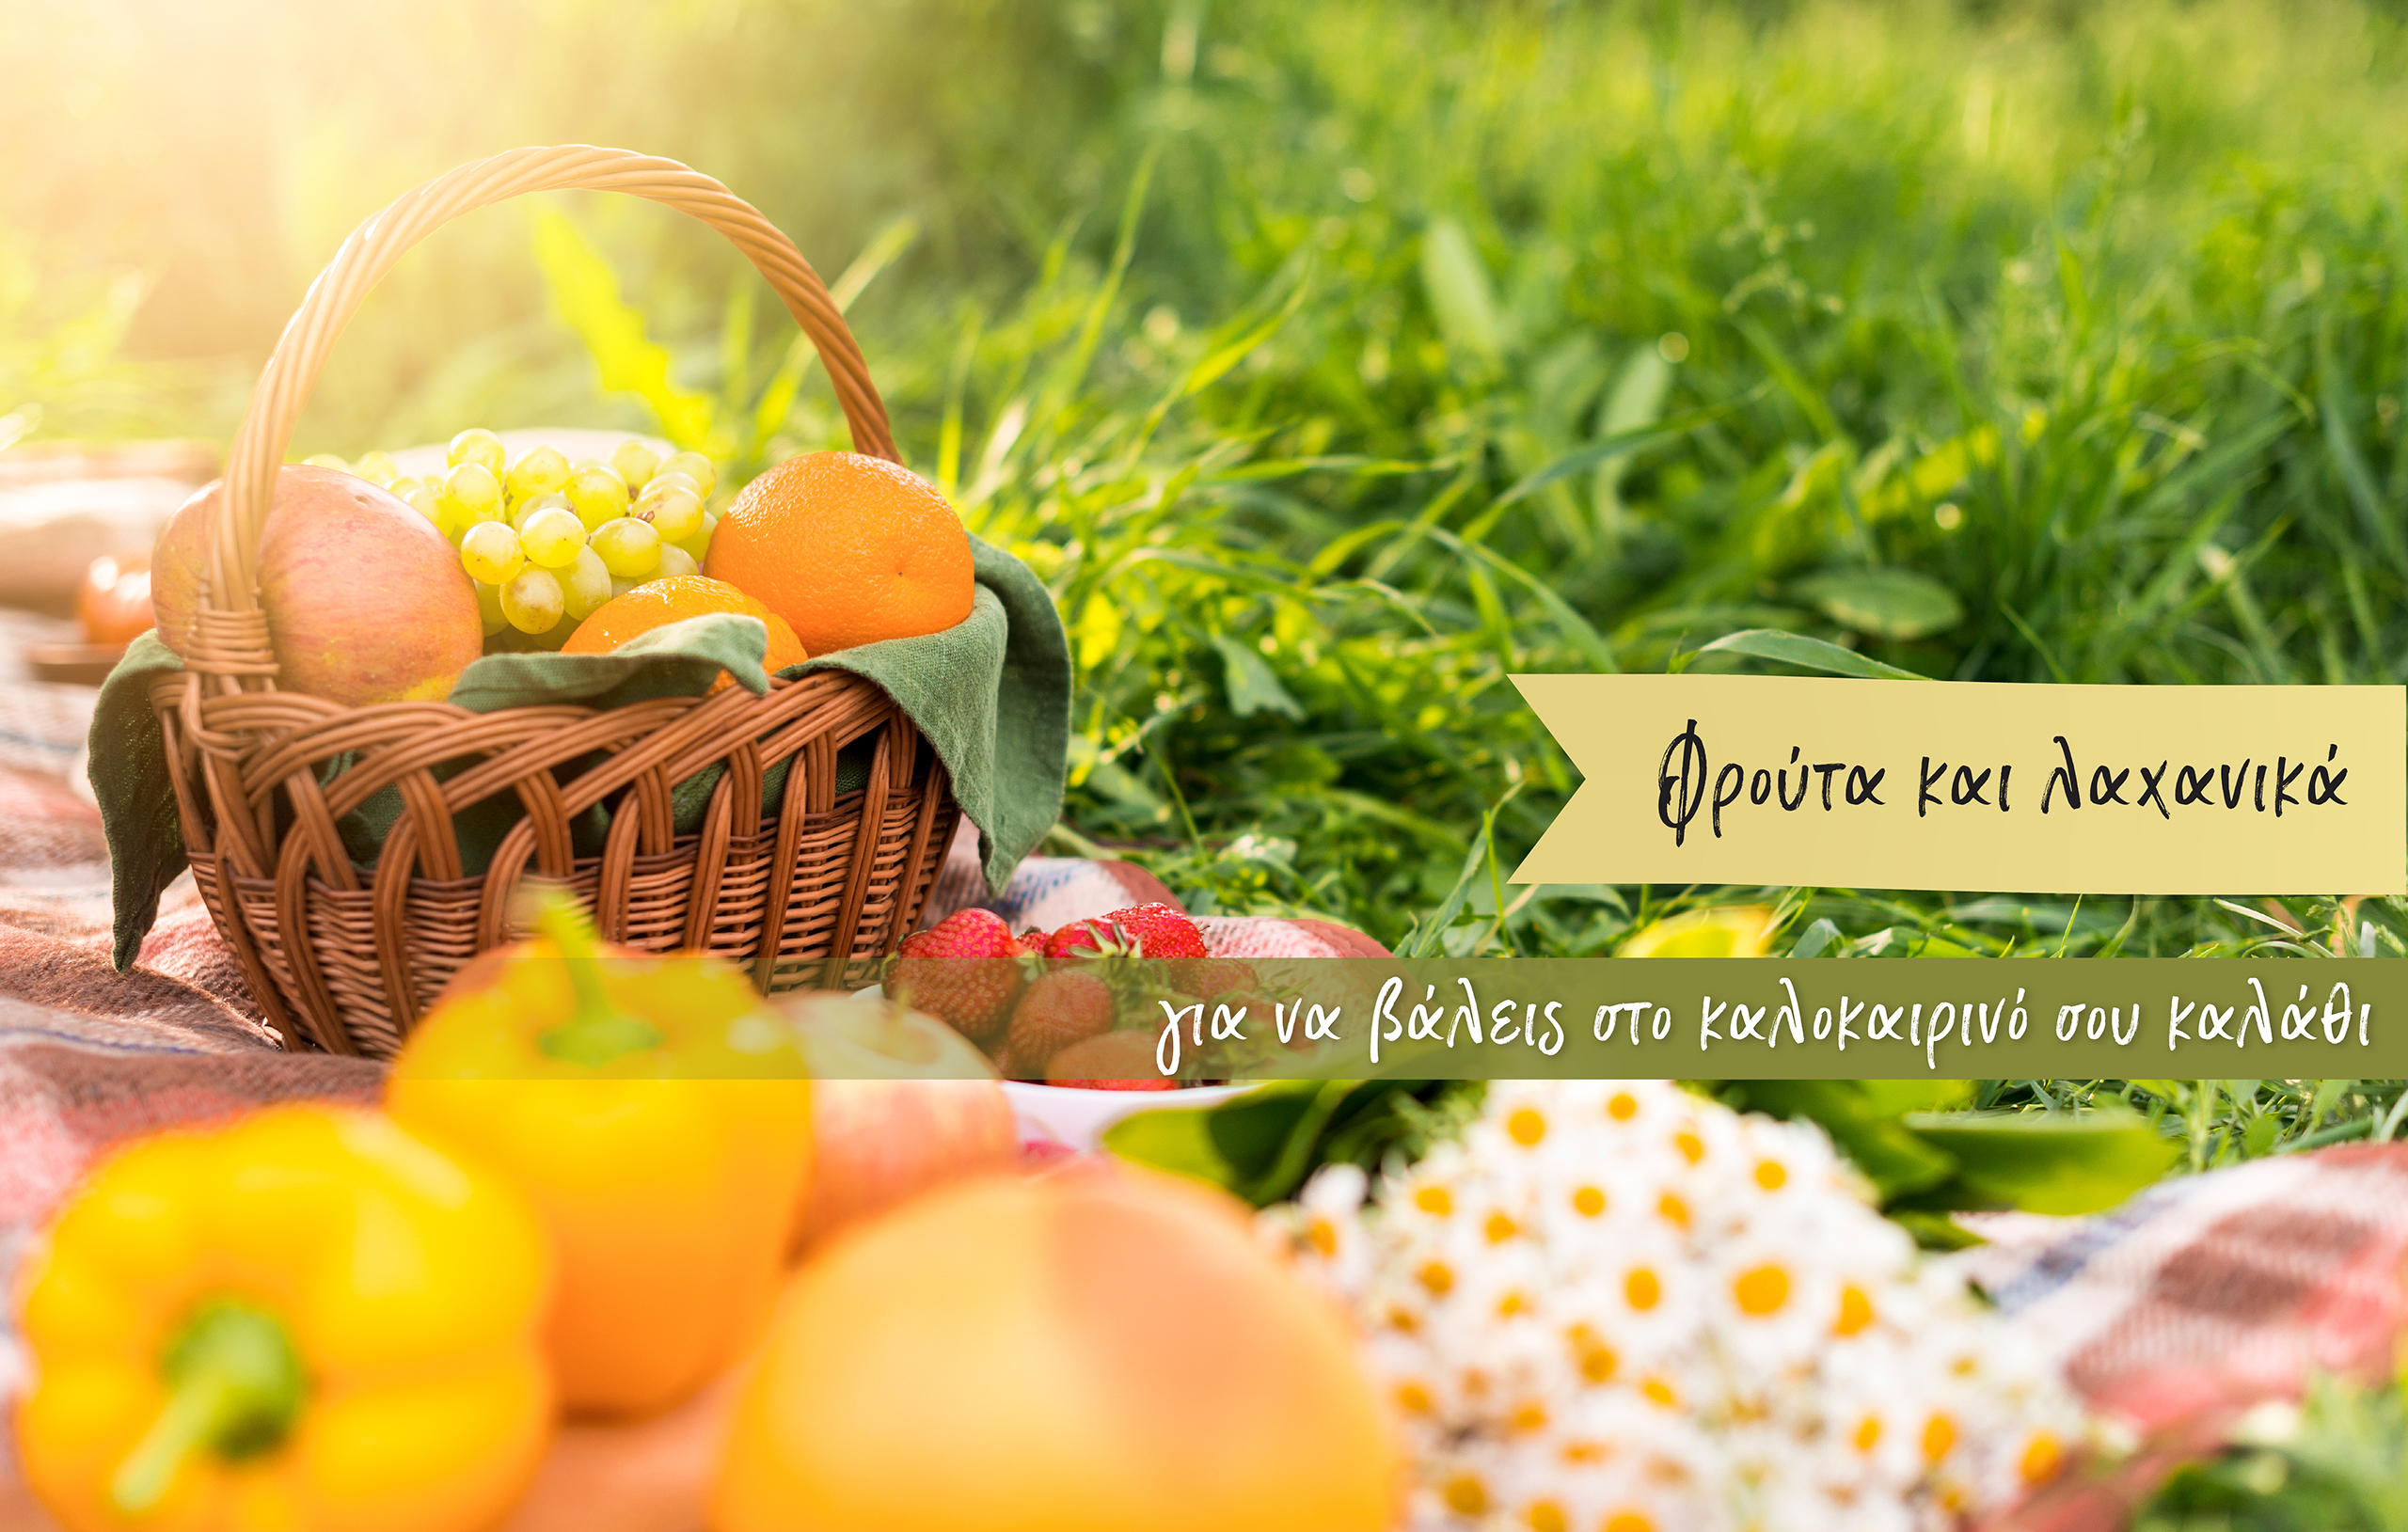 Picnic with a basket of fruits and vegetables